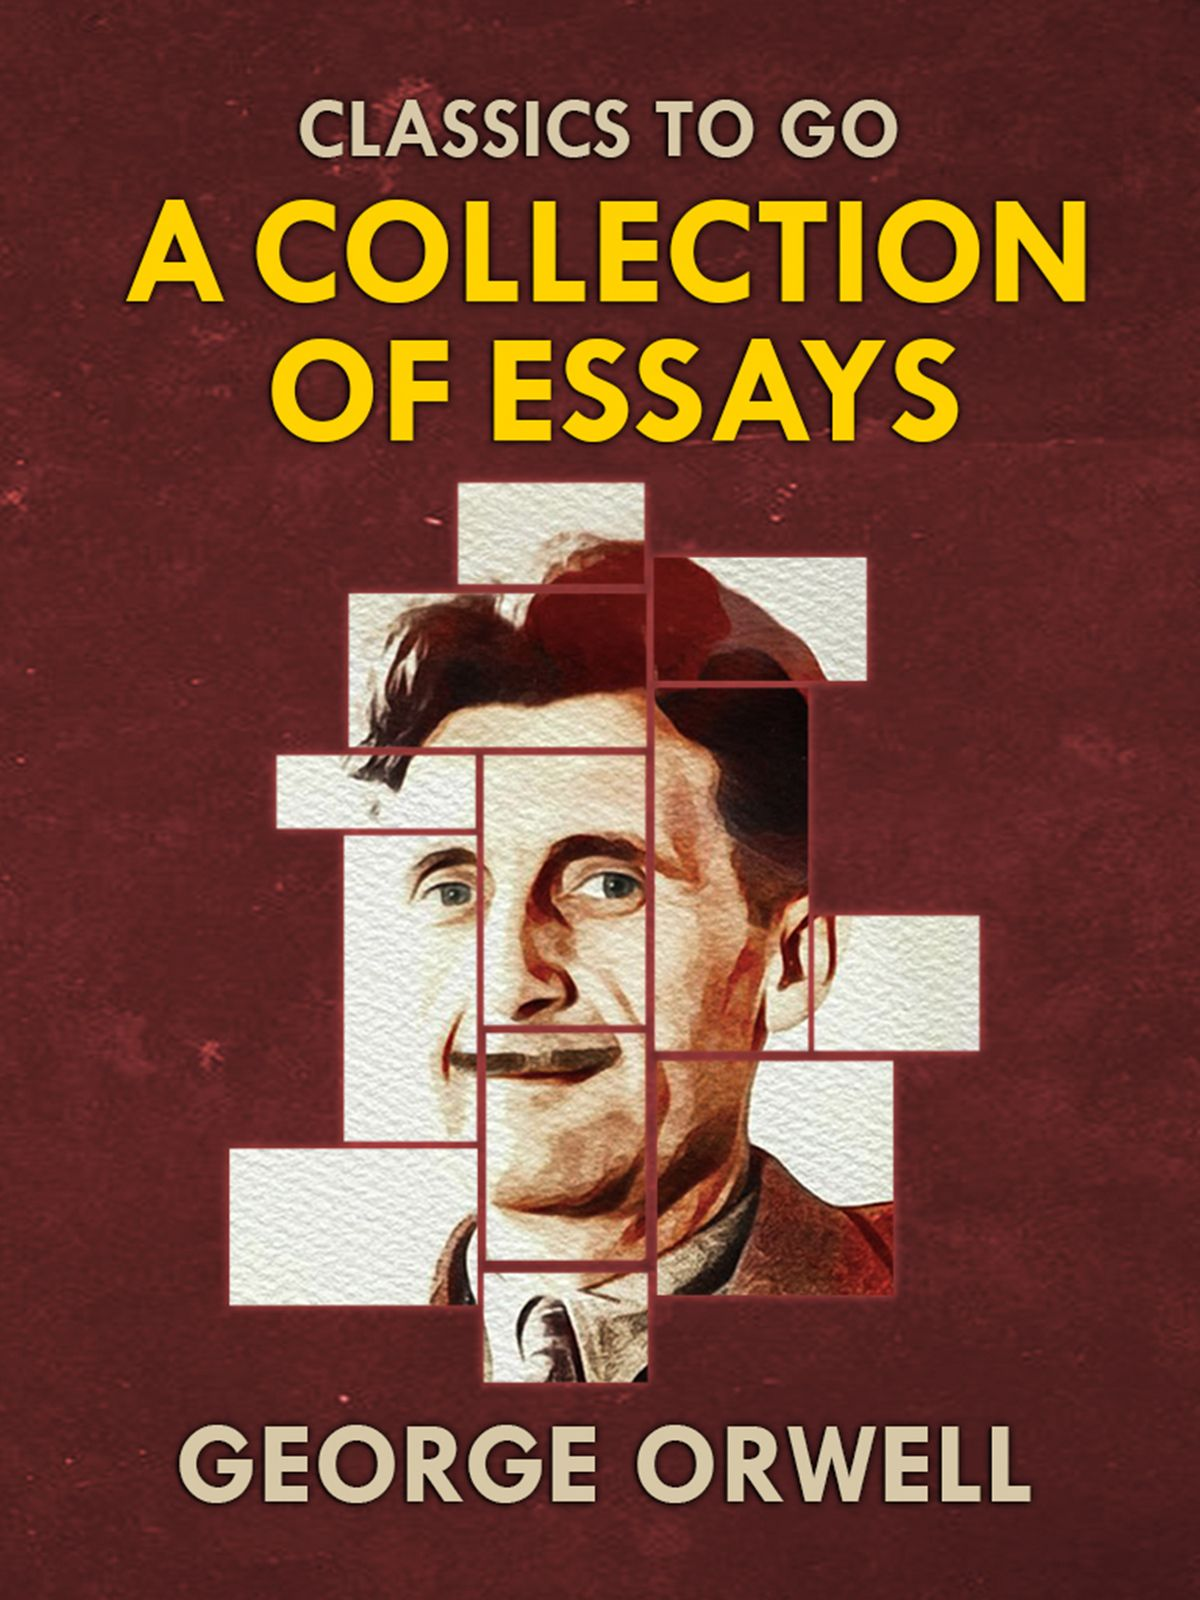 024 Collections Of George Orwell Essays Essay Frightening Everyman's Library Summary Bookshop Memories Full